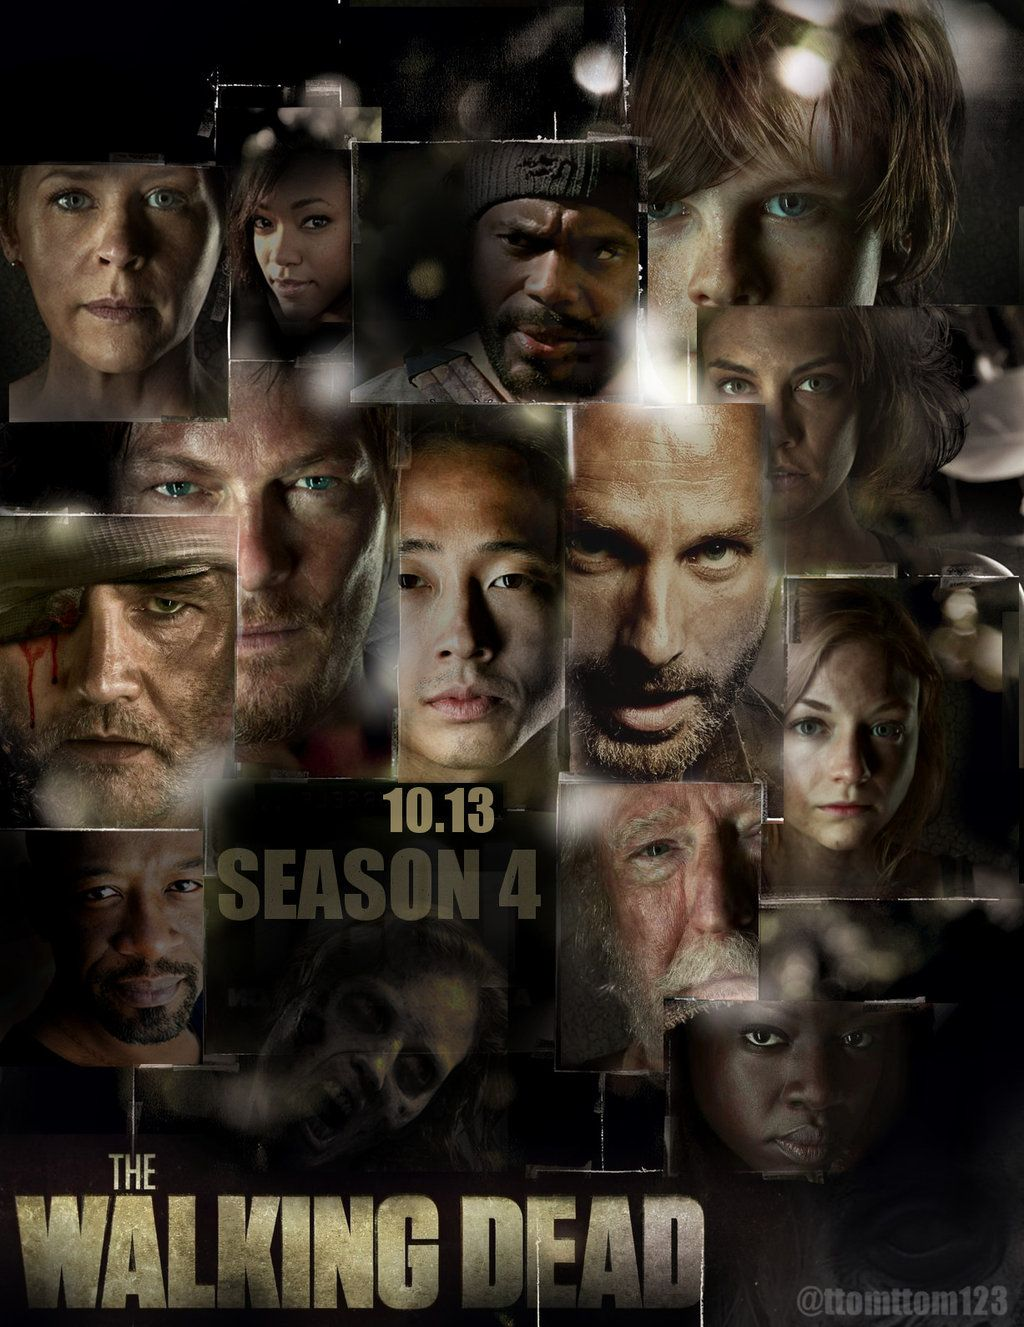 The Walking Dead S04E08 HDTV Nl subs DutchReleaseTeam preview 0